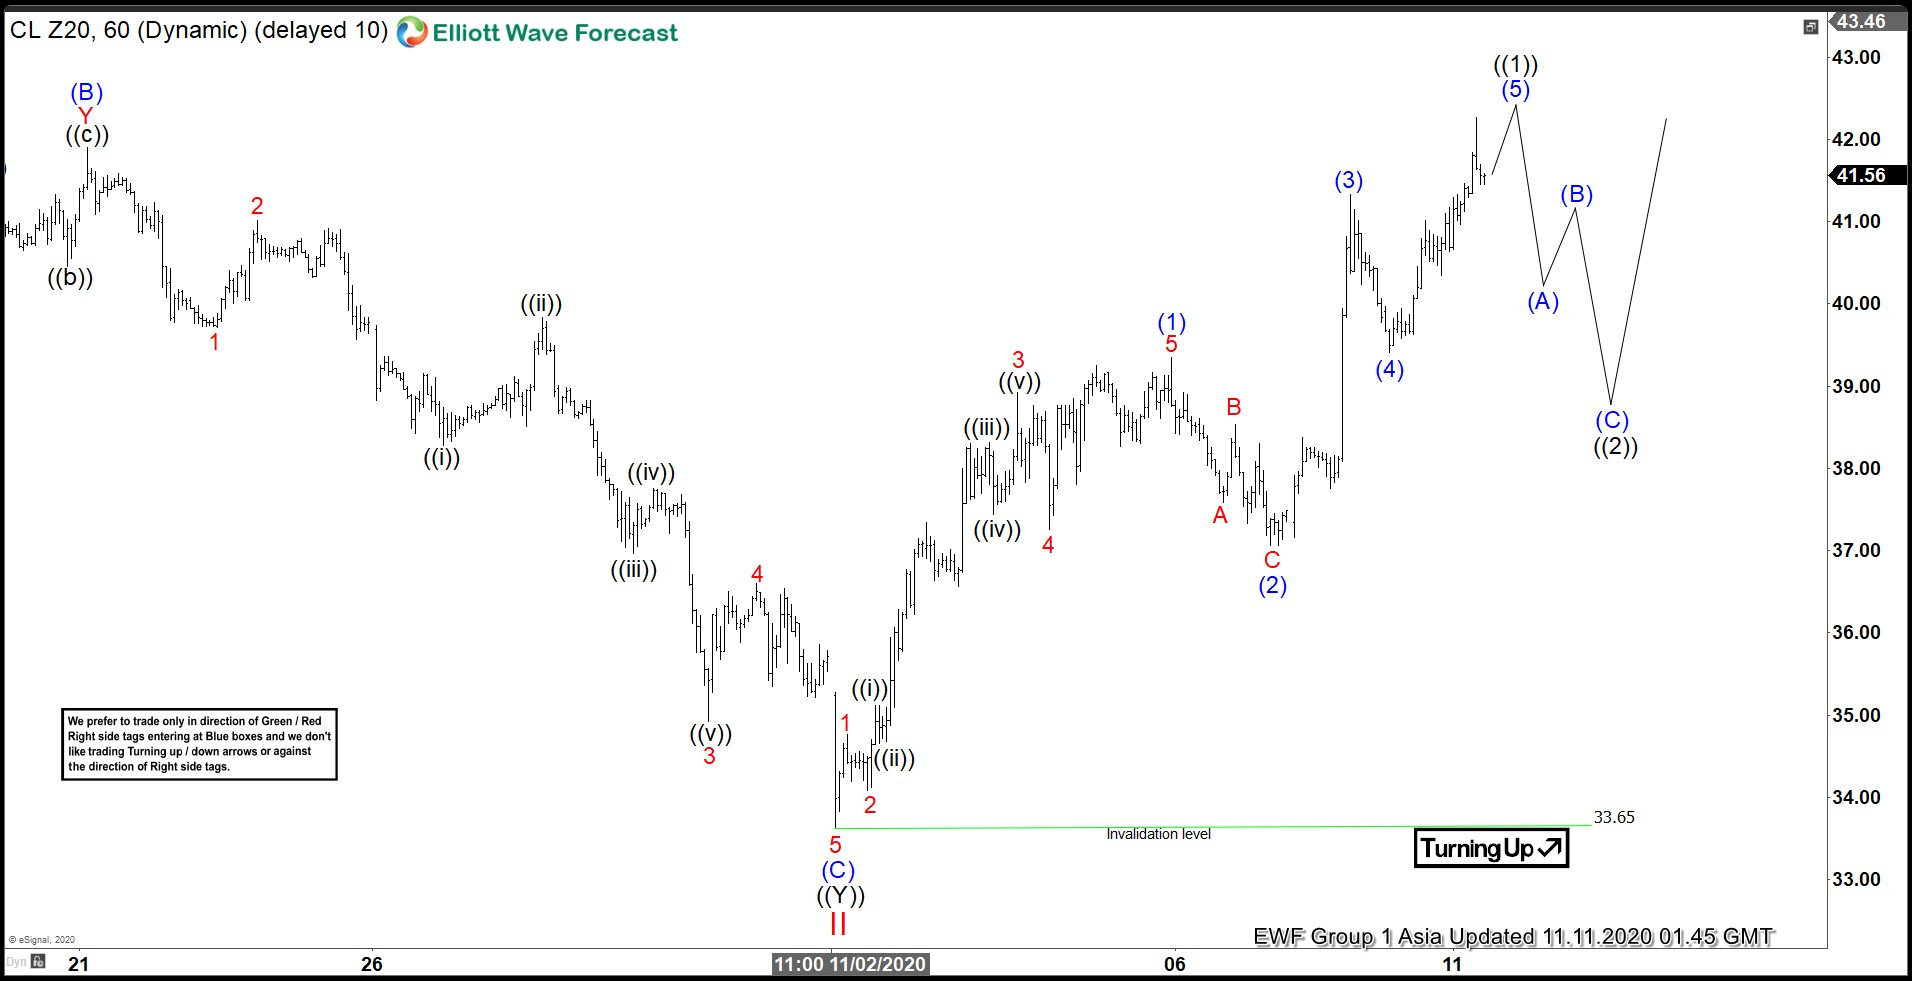 Elliott Wave View: Bullish Outlook in Oil (CL)